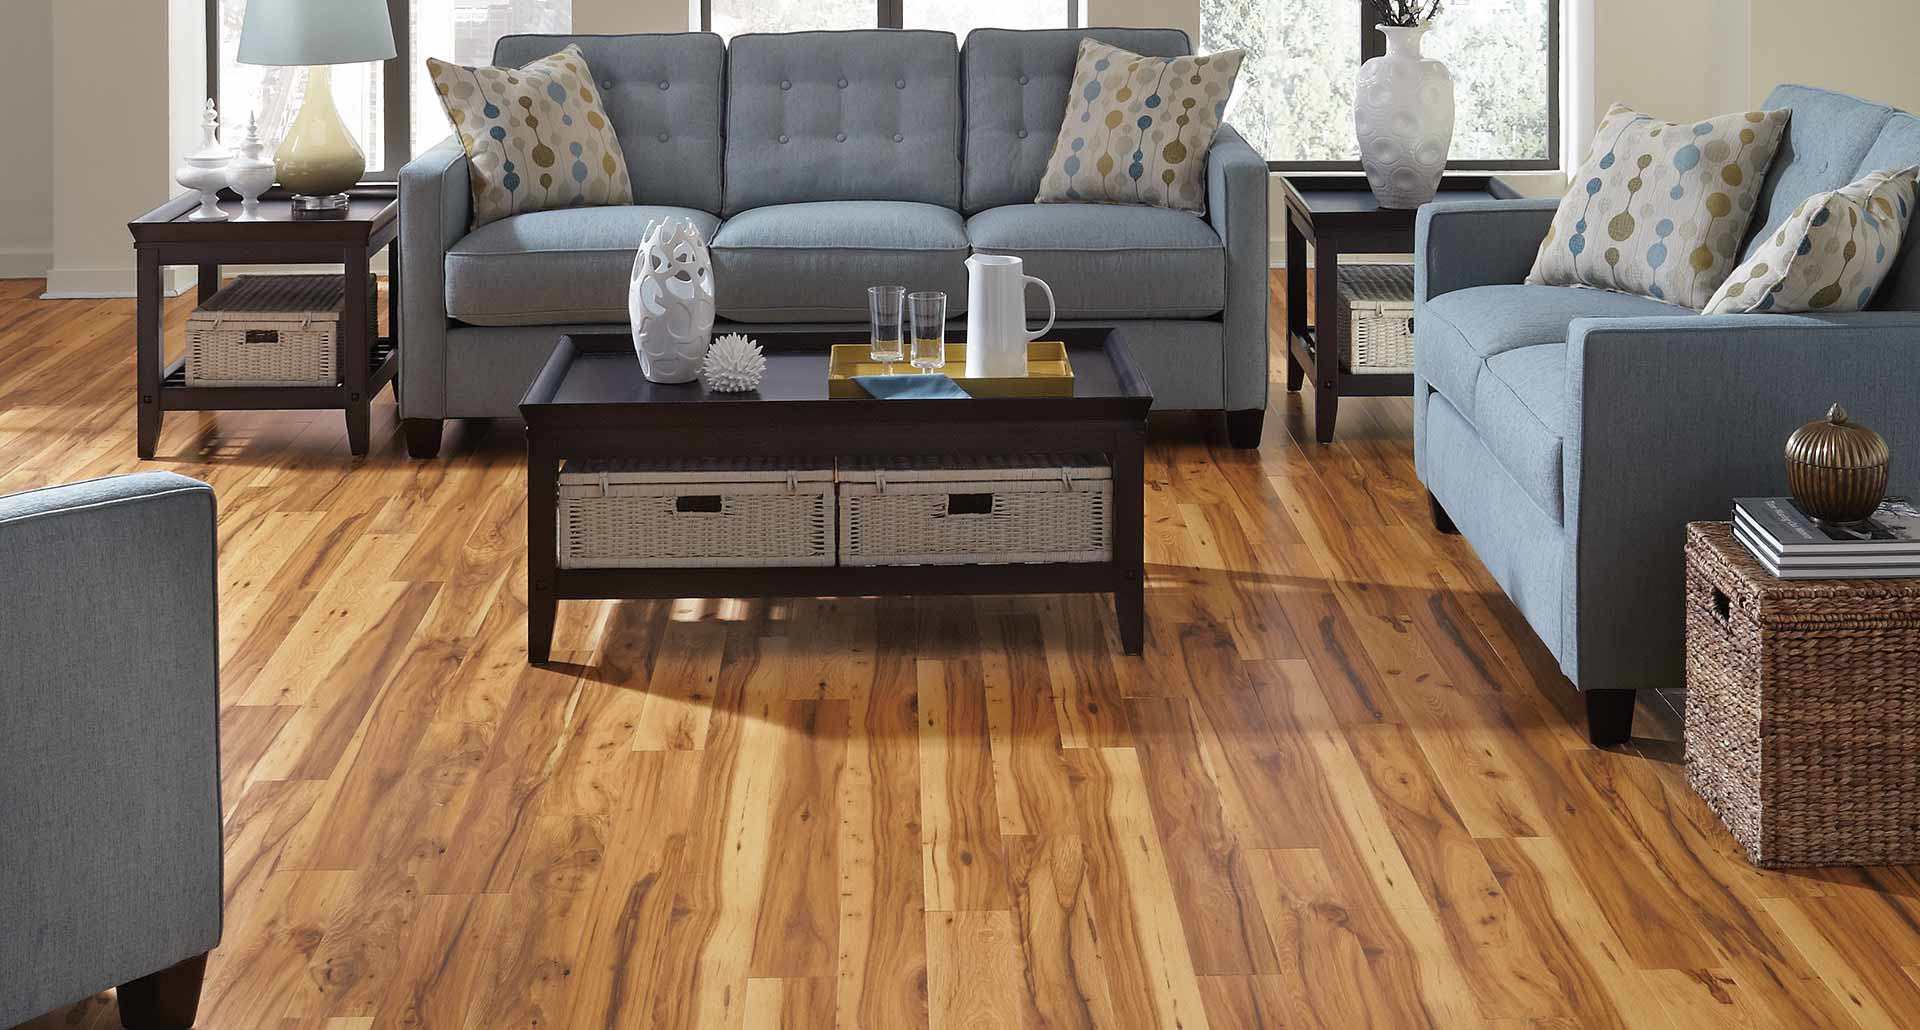 Top 15 Flooring Materials Costs Pros Cons 2019